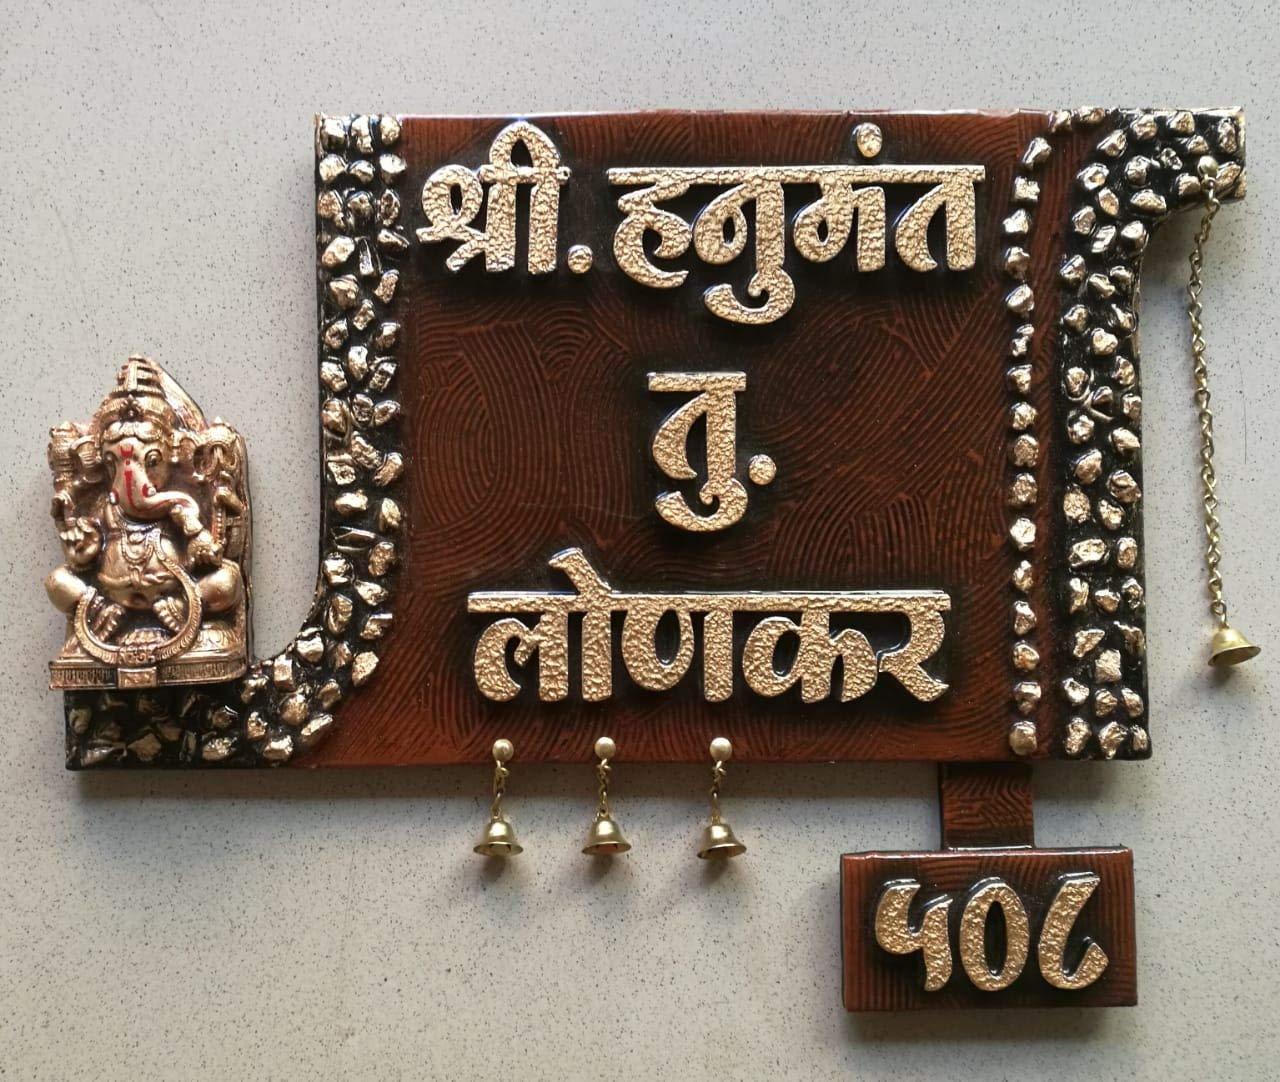 Buy Decor and Design Hindi Letter Name Plate-Wall Decor Name Plate